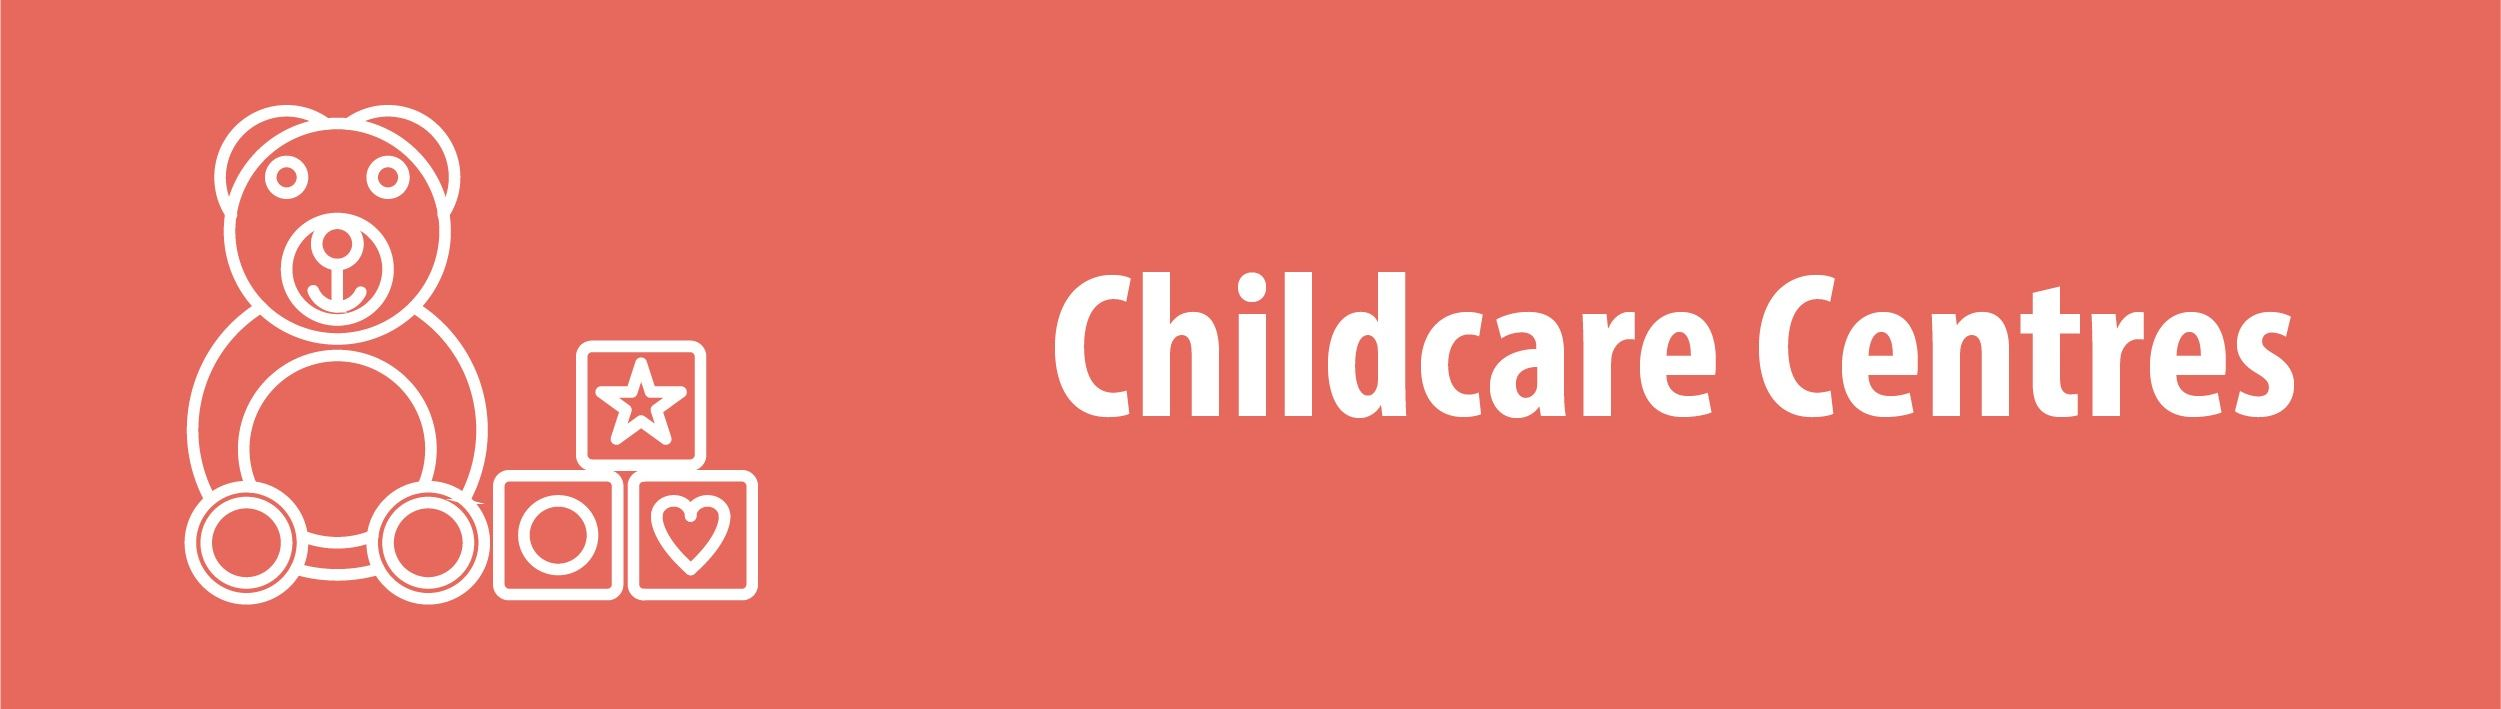 Childcare Centres Banner